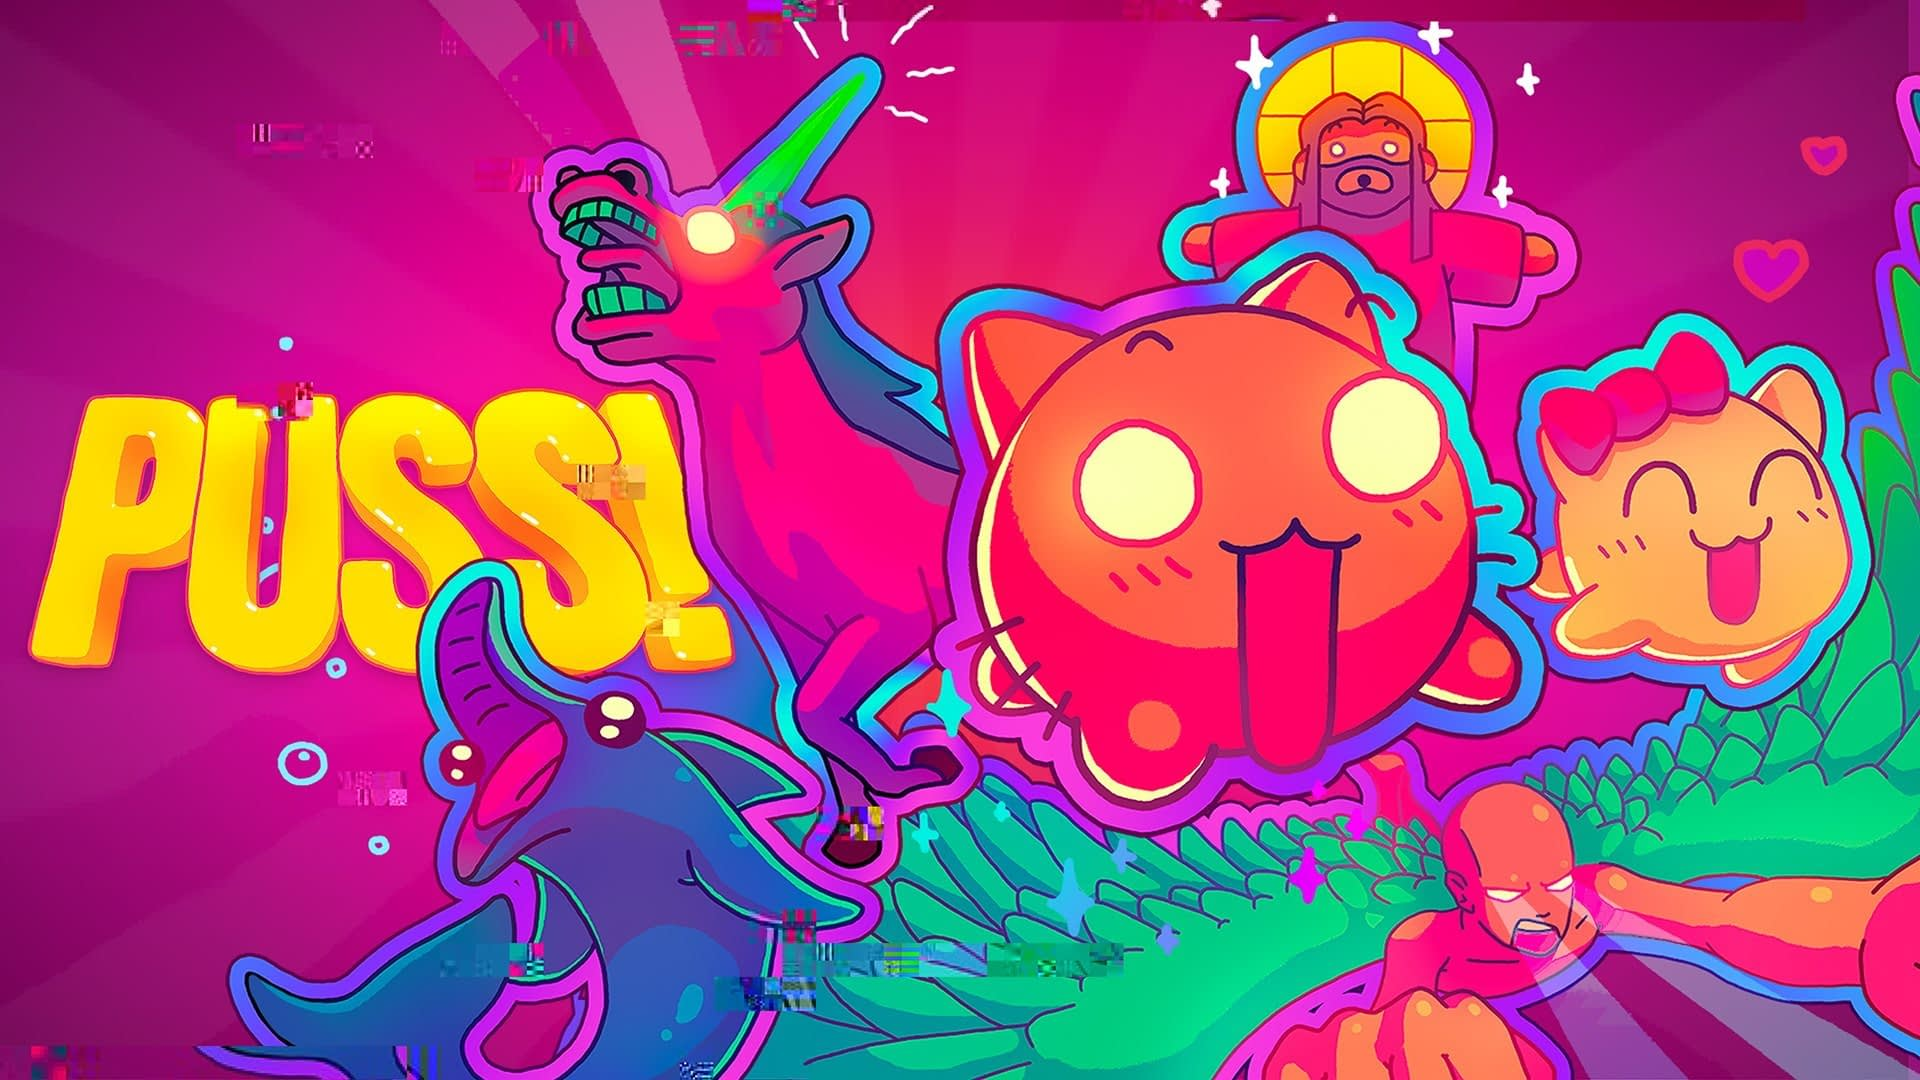 PUSS! Is Now Available For Digital Pre-order And Pre-download On Xbox One And Xbox Series X|S 1